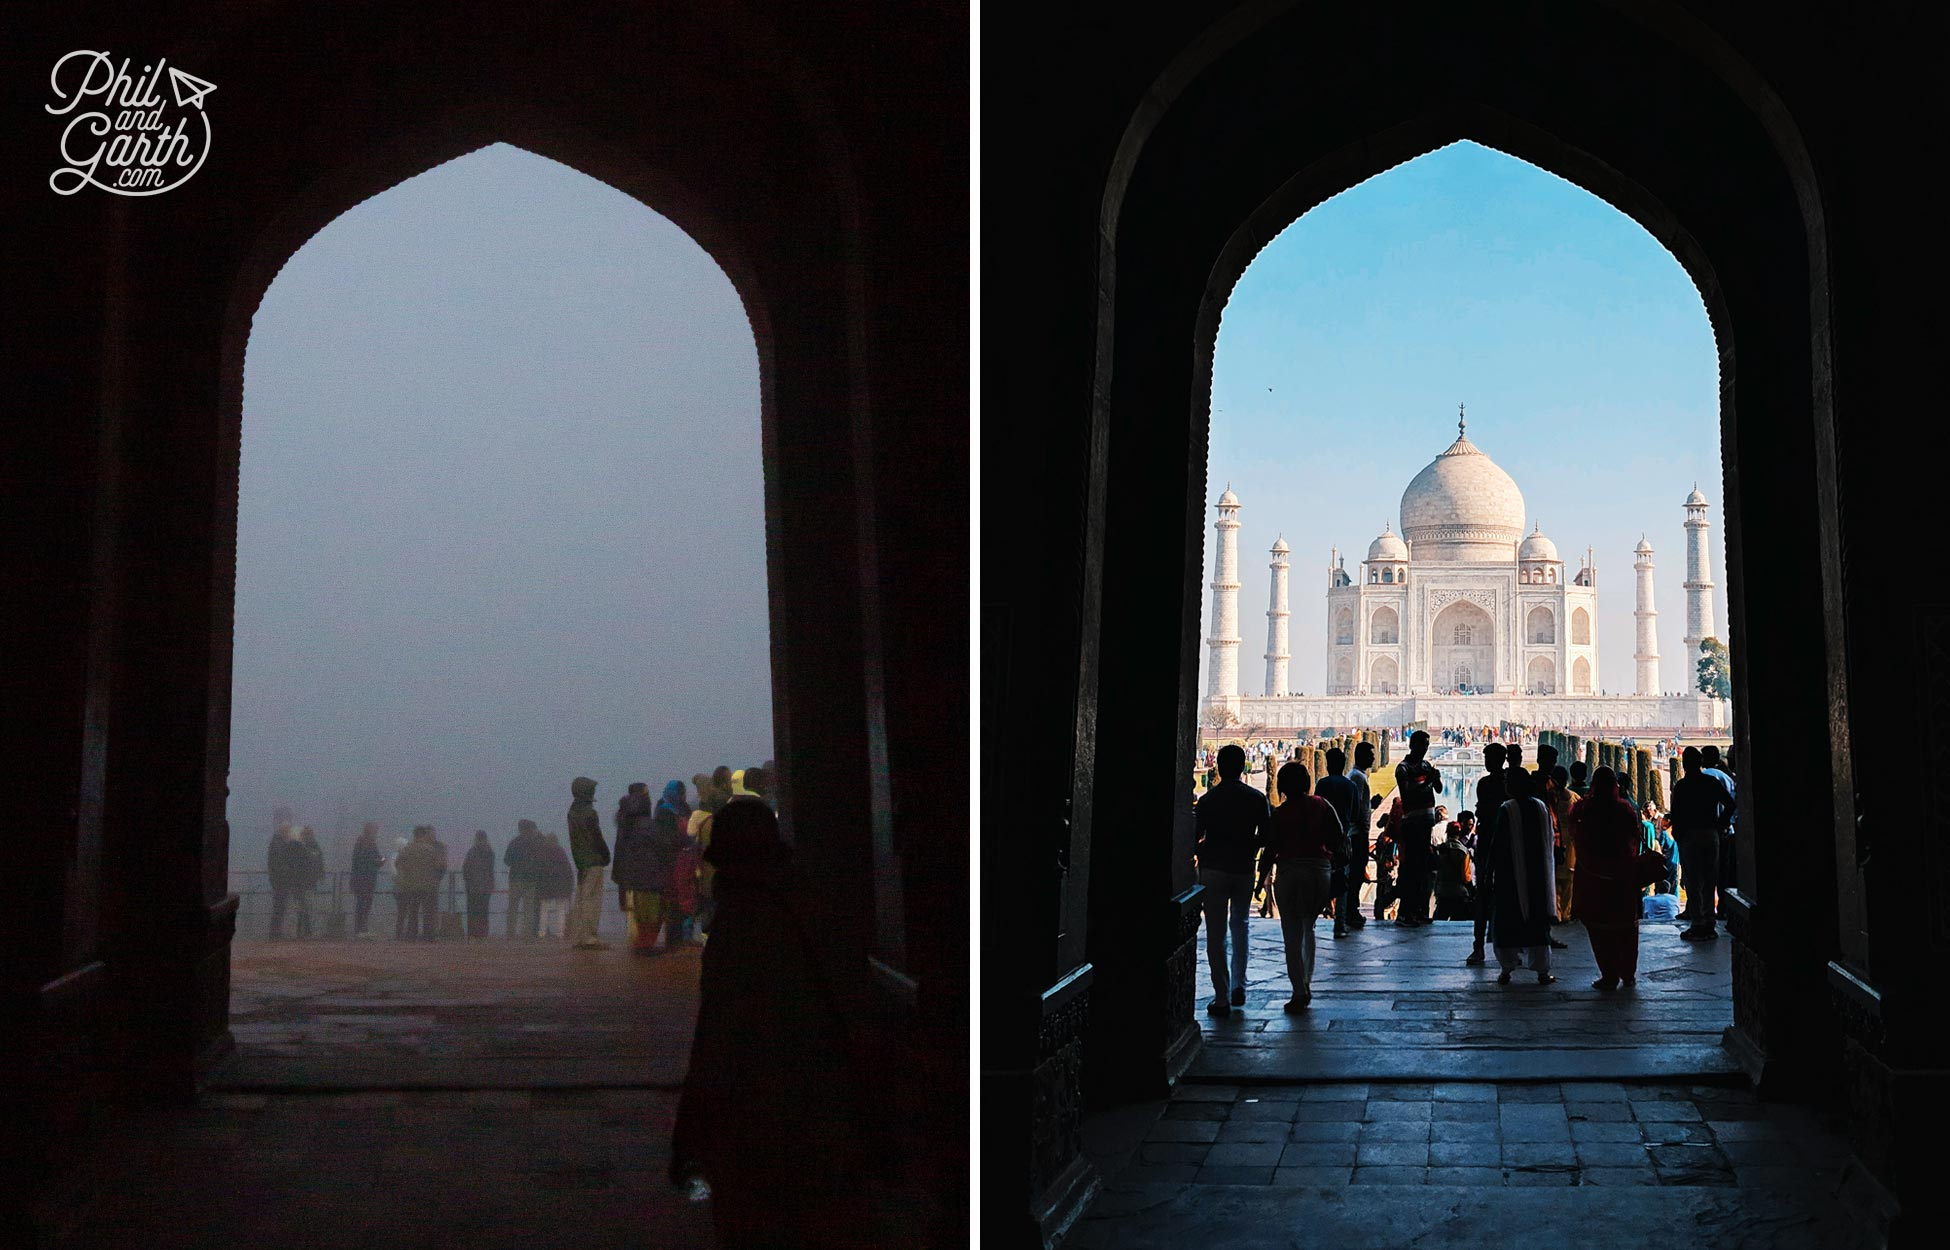 The classic shot of the Taj Mahal from the North gate entrance - our foggy view vs what we should have seen!